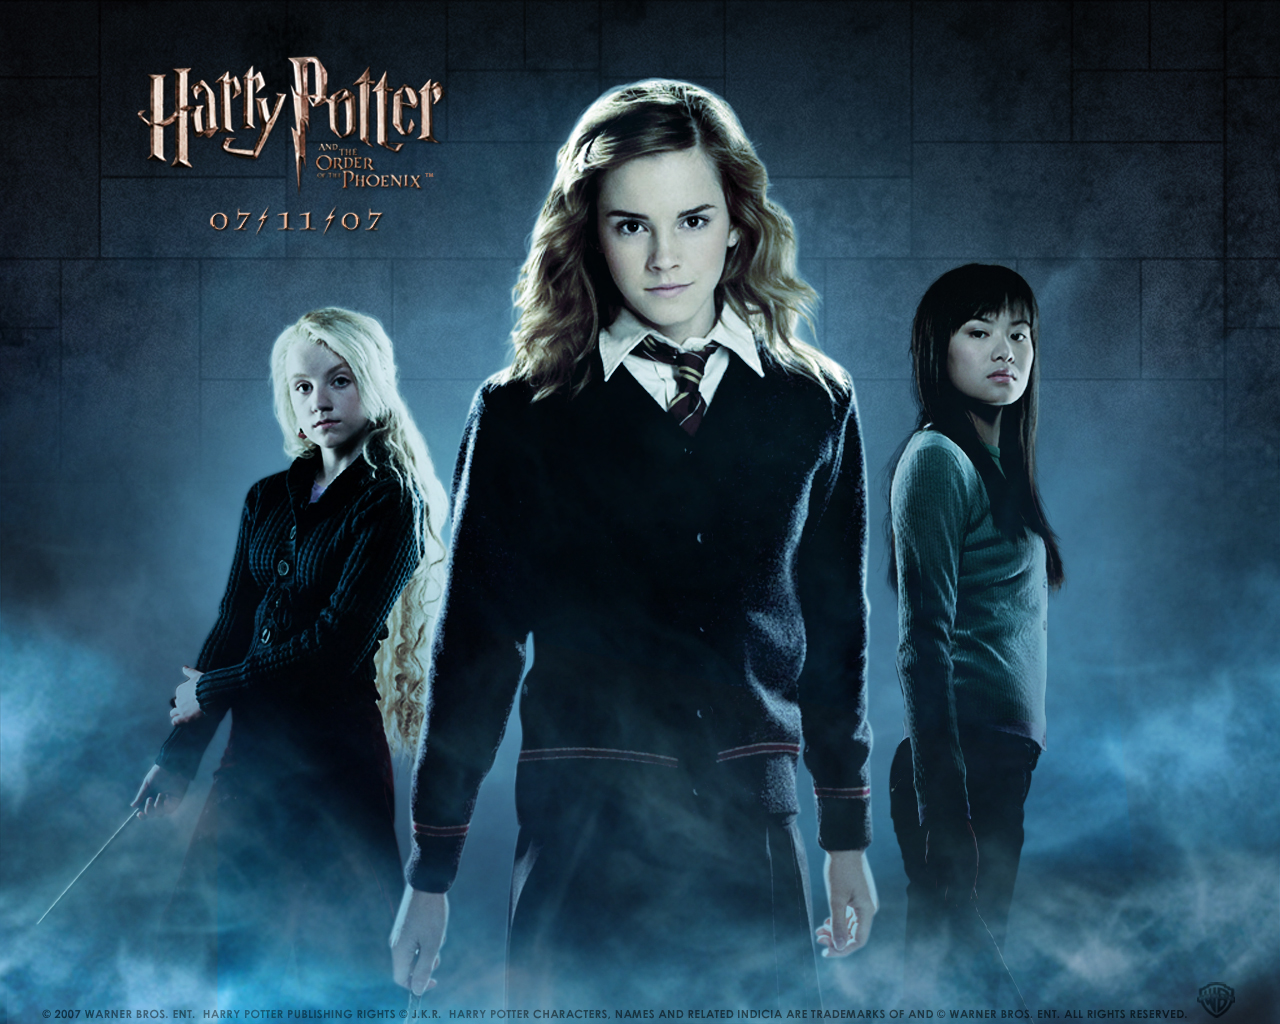 Hermione granger can ride my broomstick any day it 39 s - Hermione granger harry potter and the order of the phoenix ...